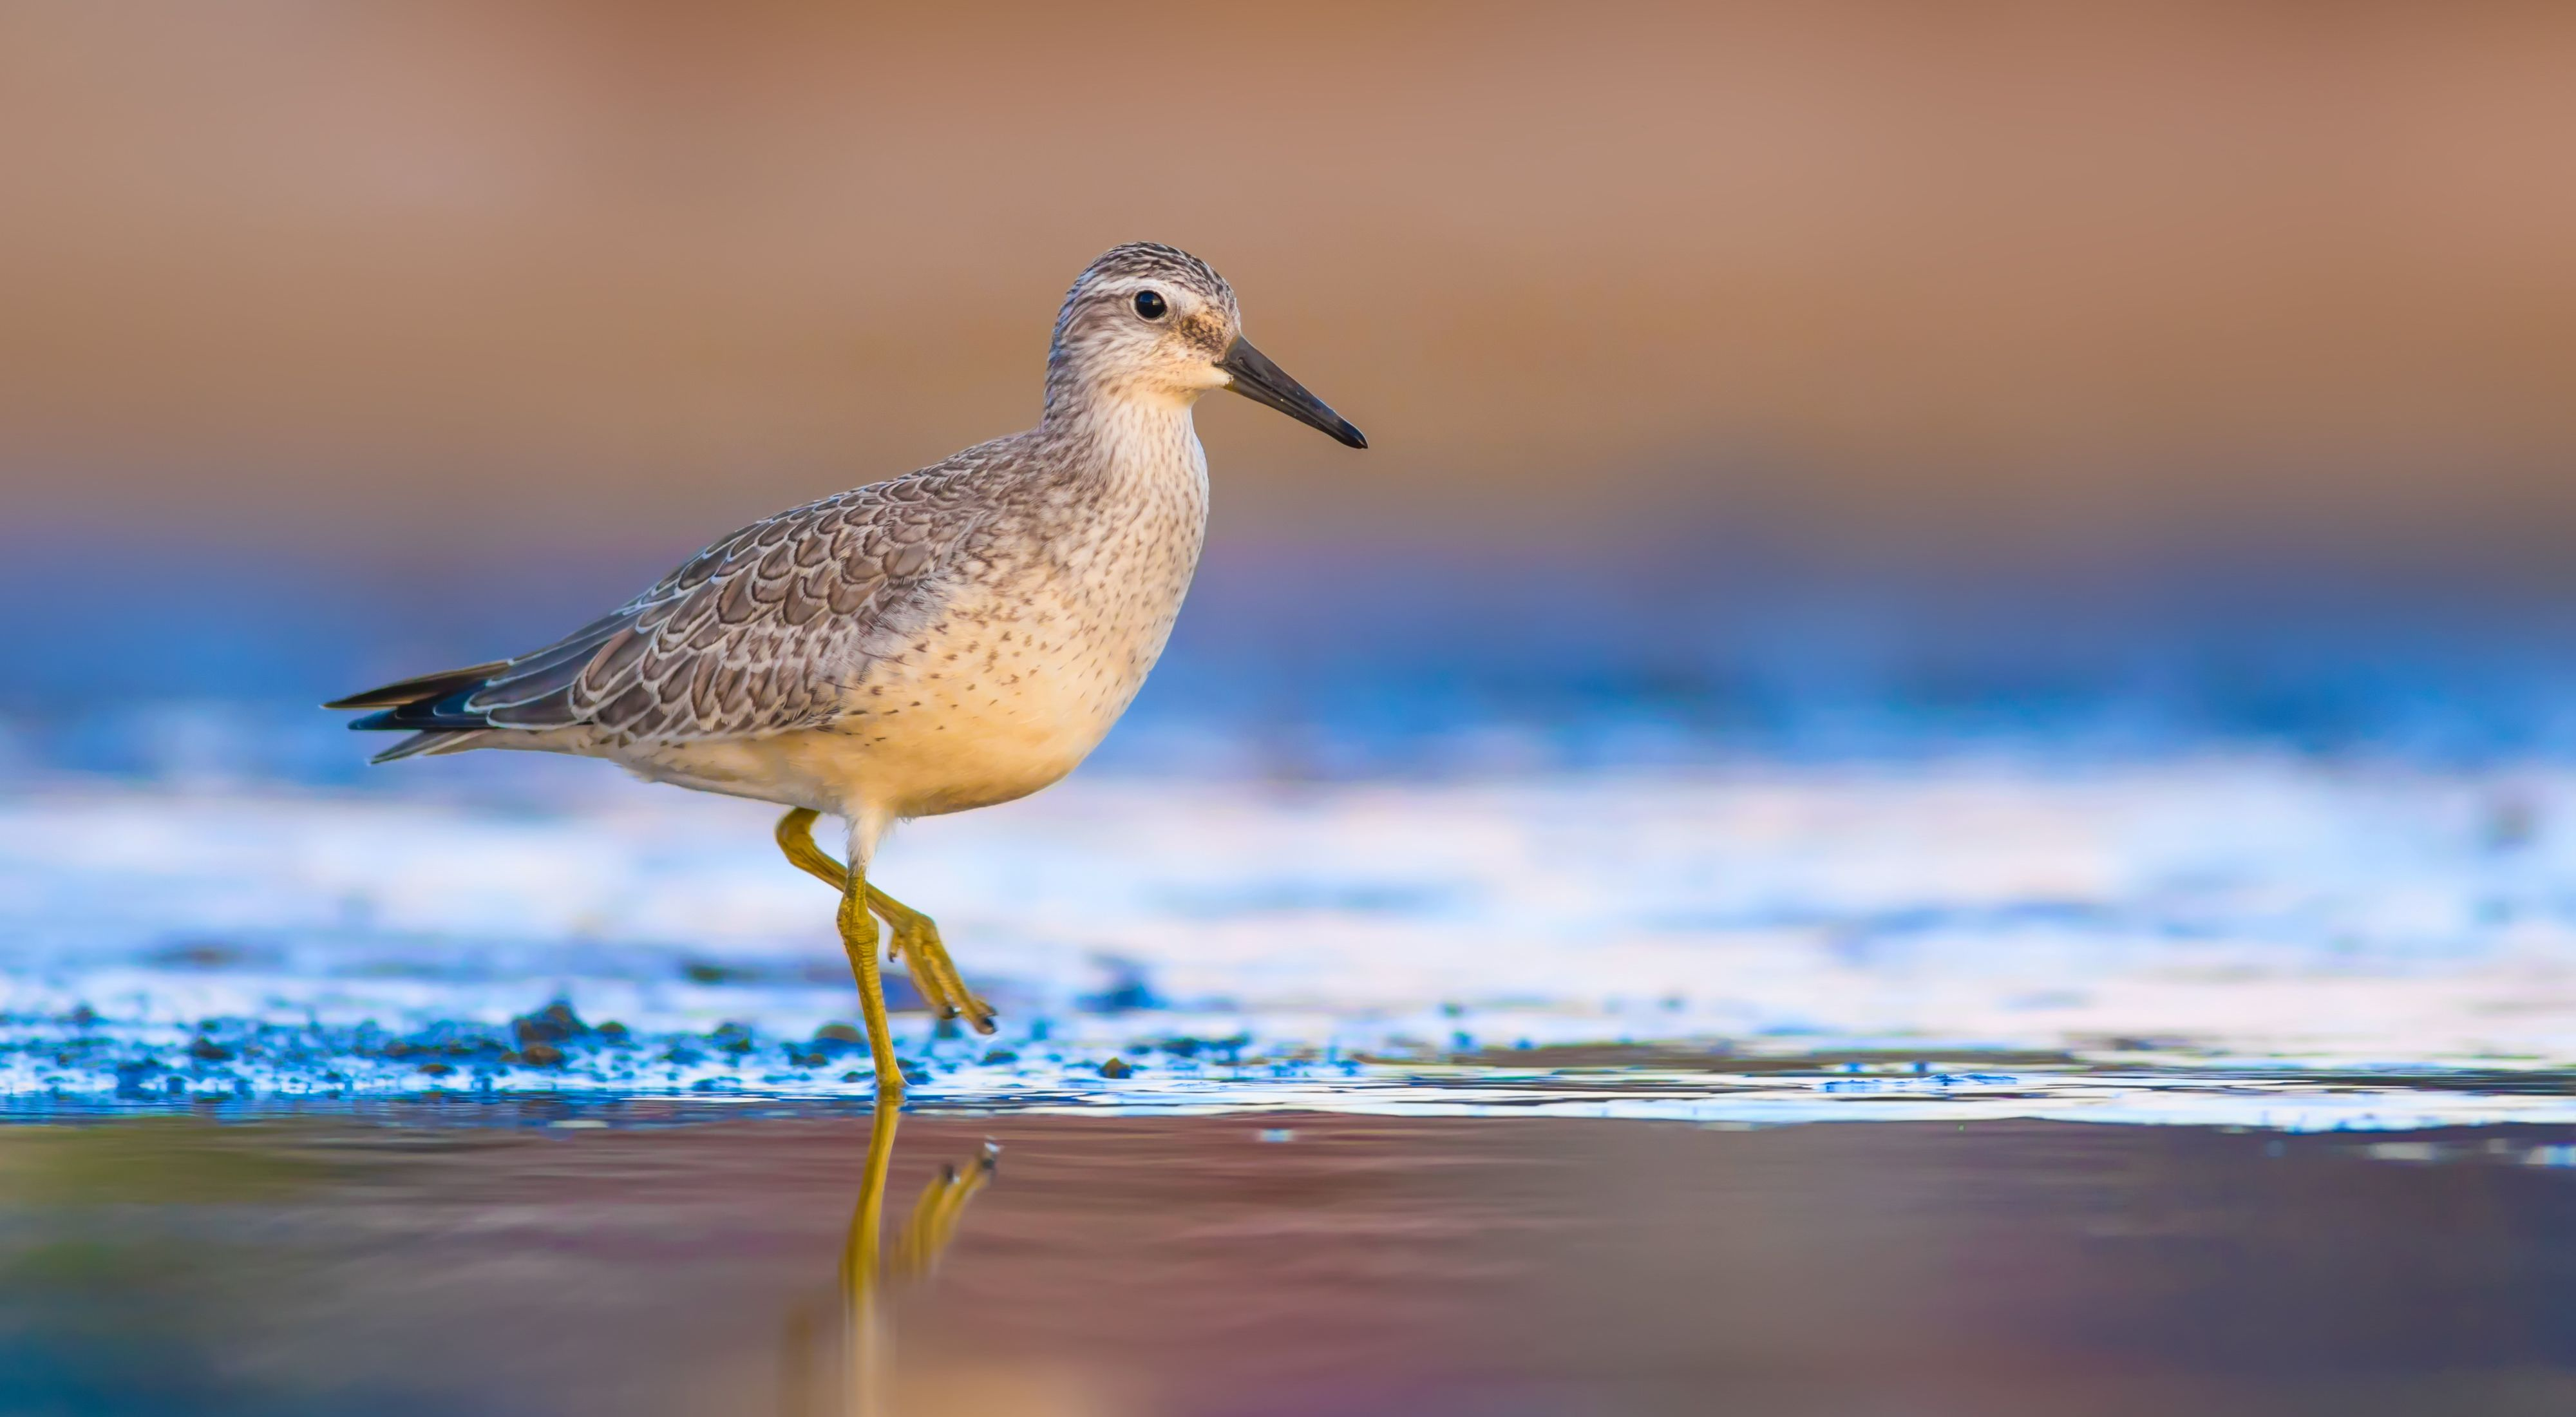 side view of a grey shorebird with a black beak on the beach